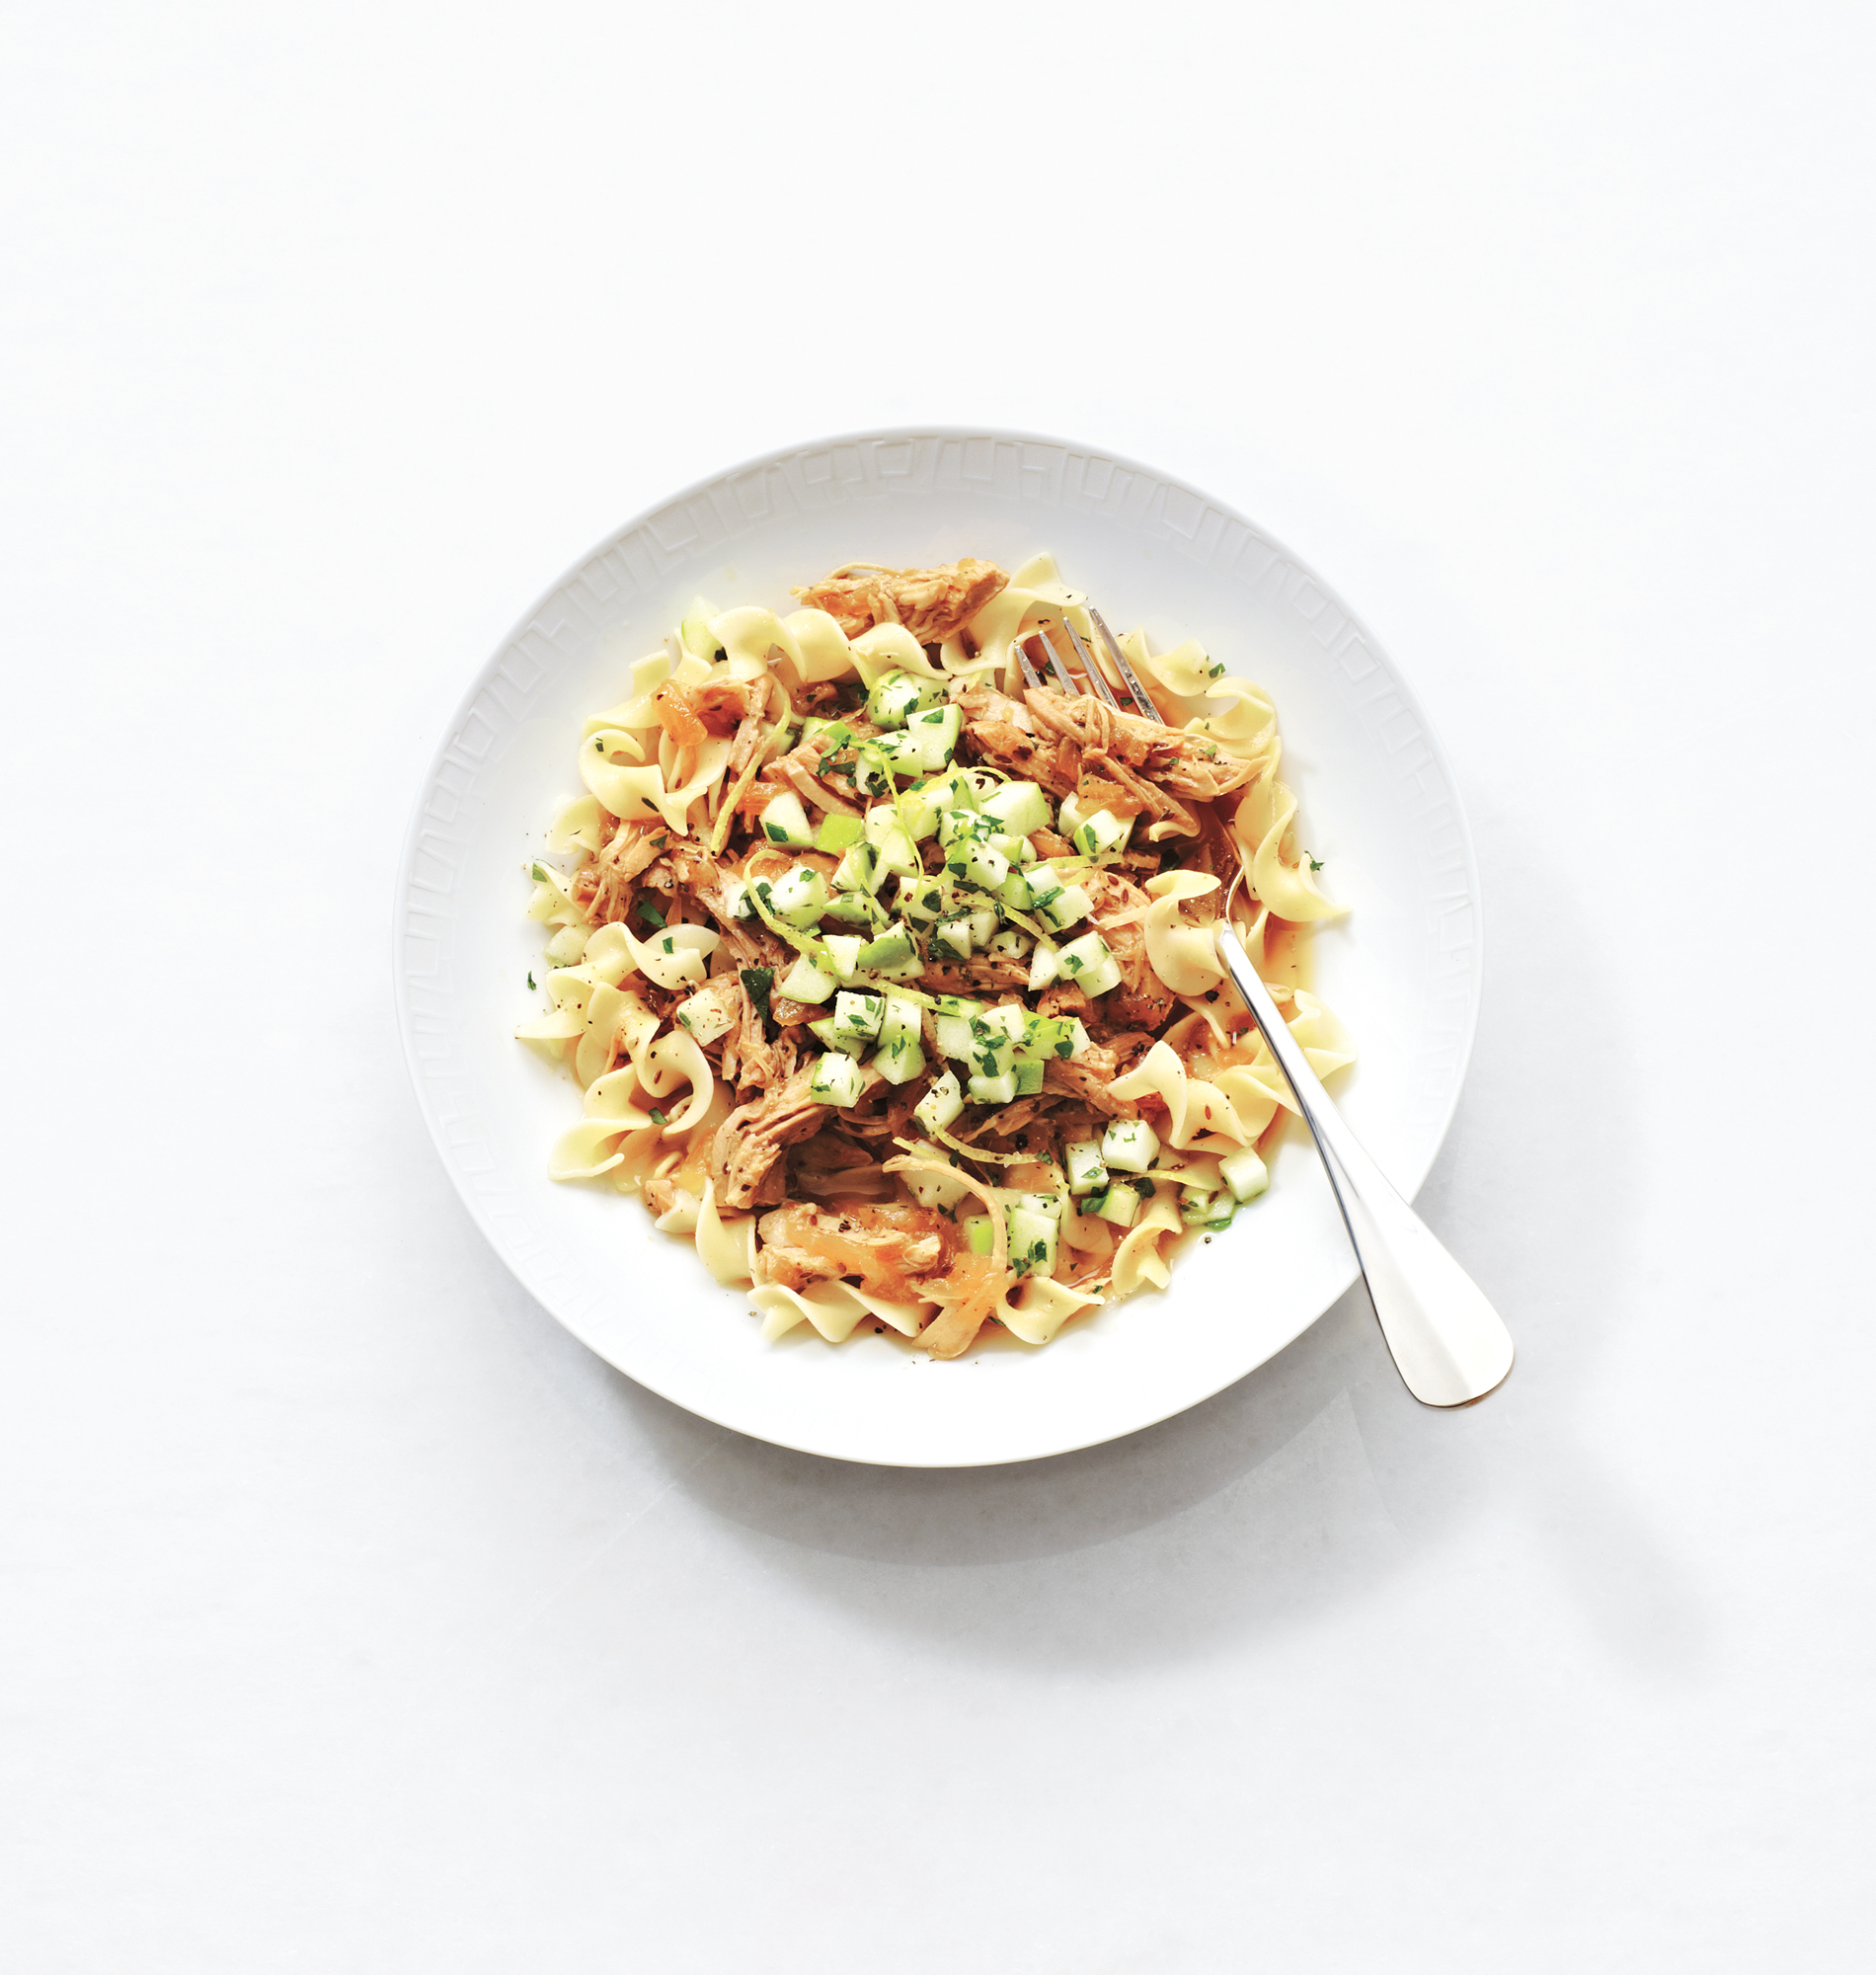 pork-shoulder-apple-relish-egg-noodles